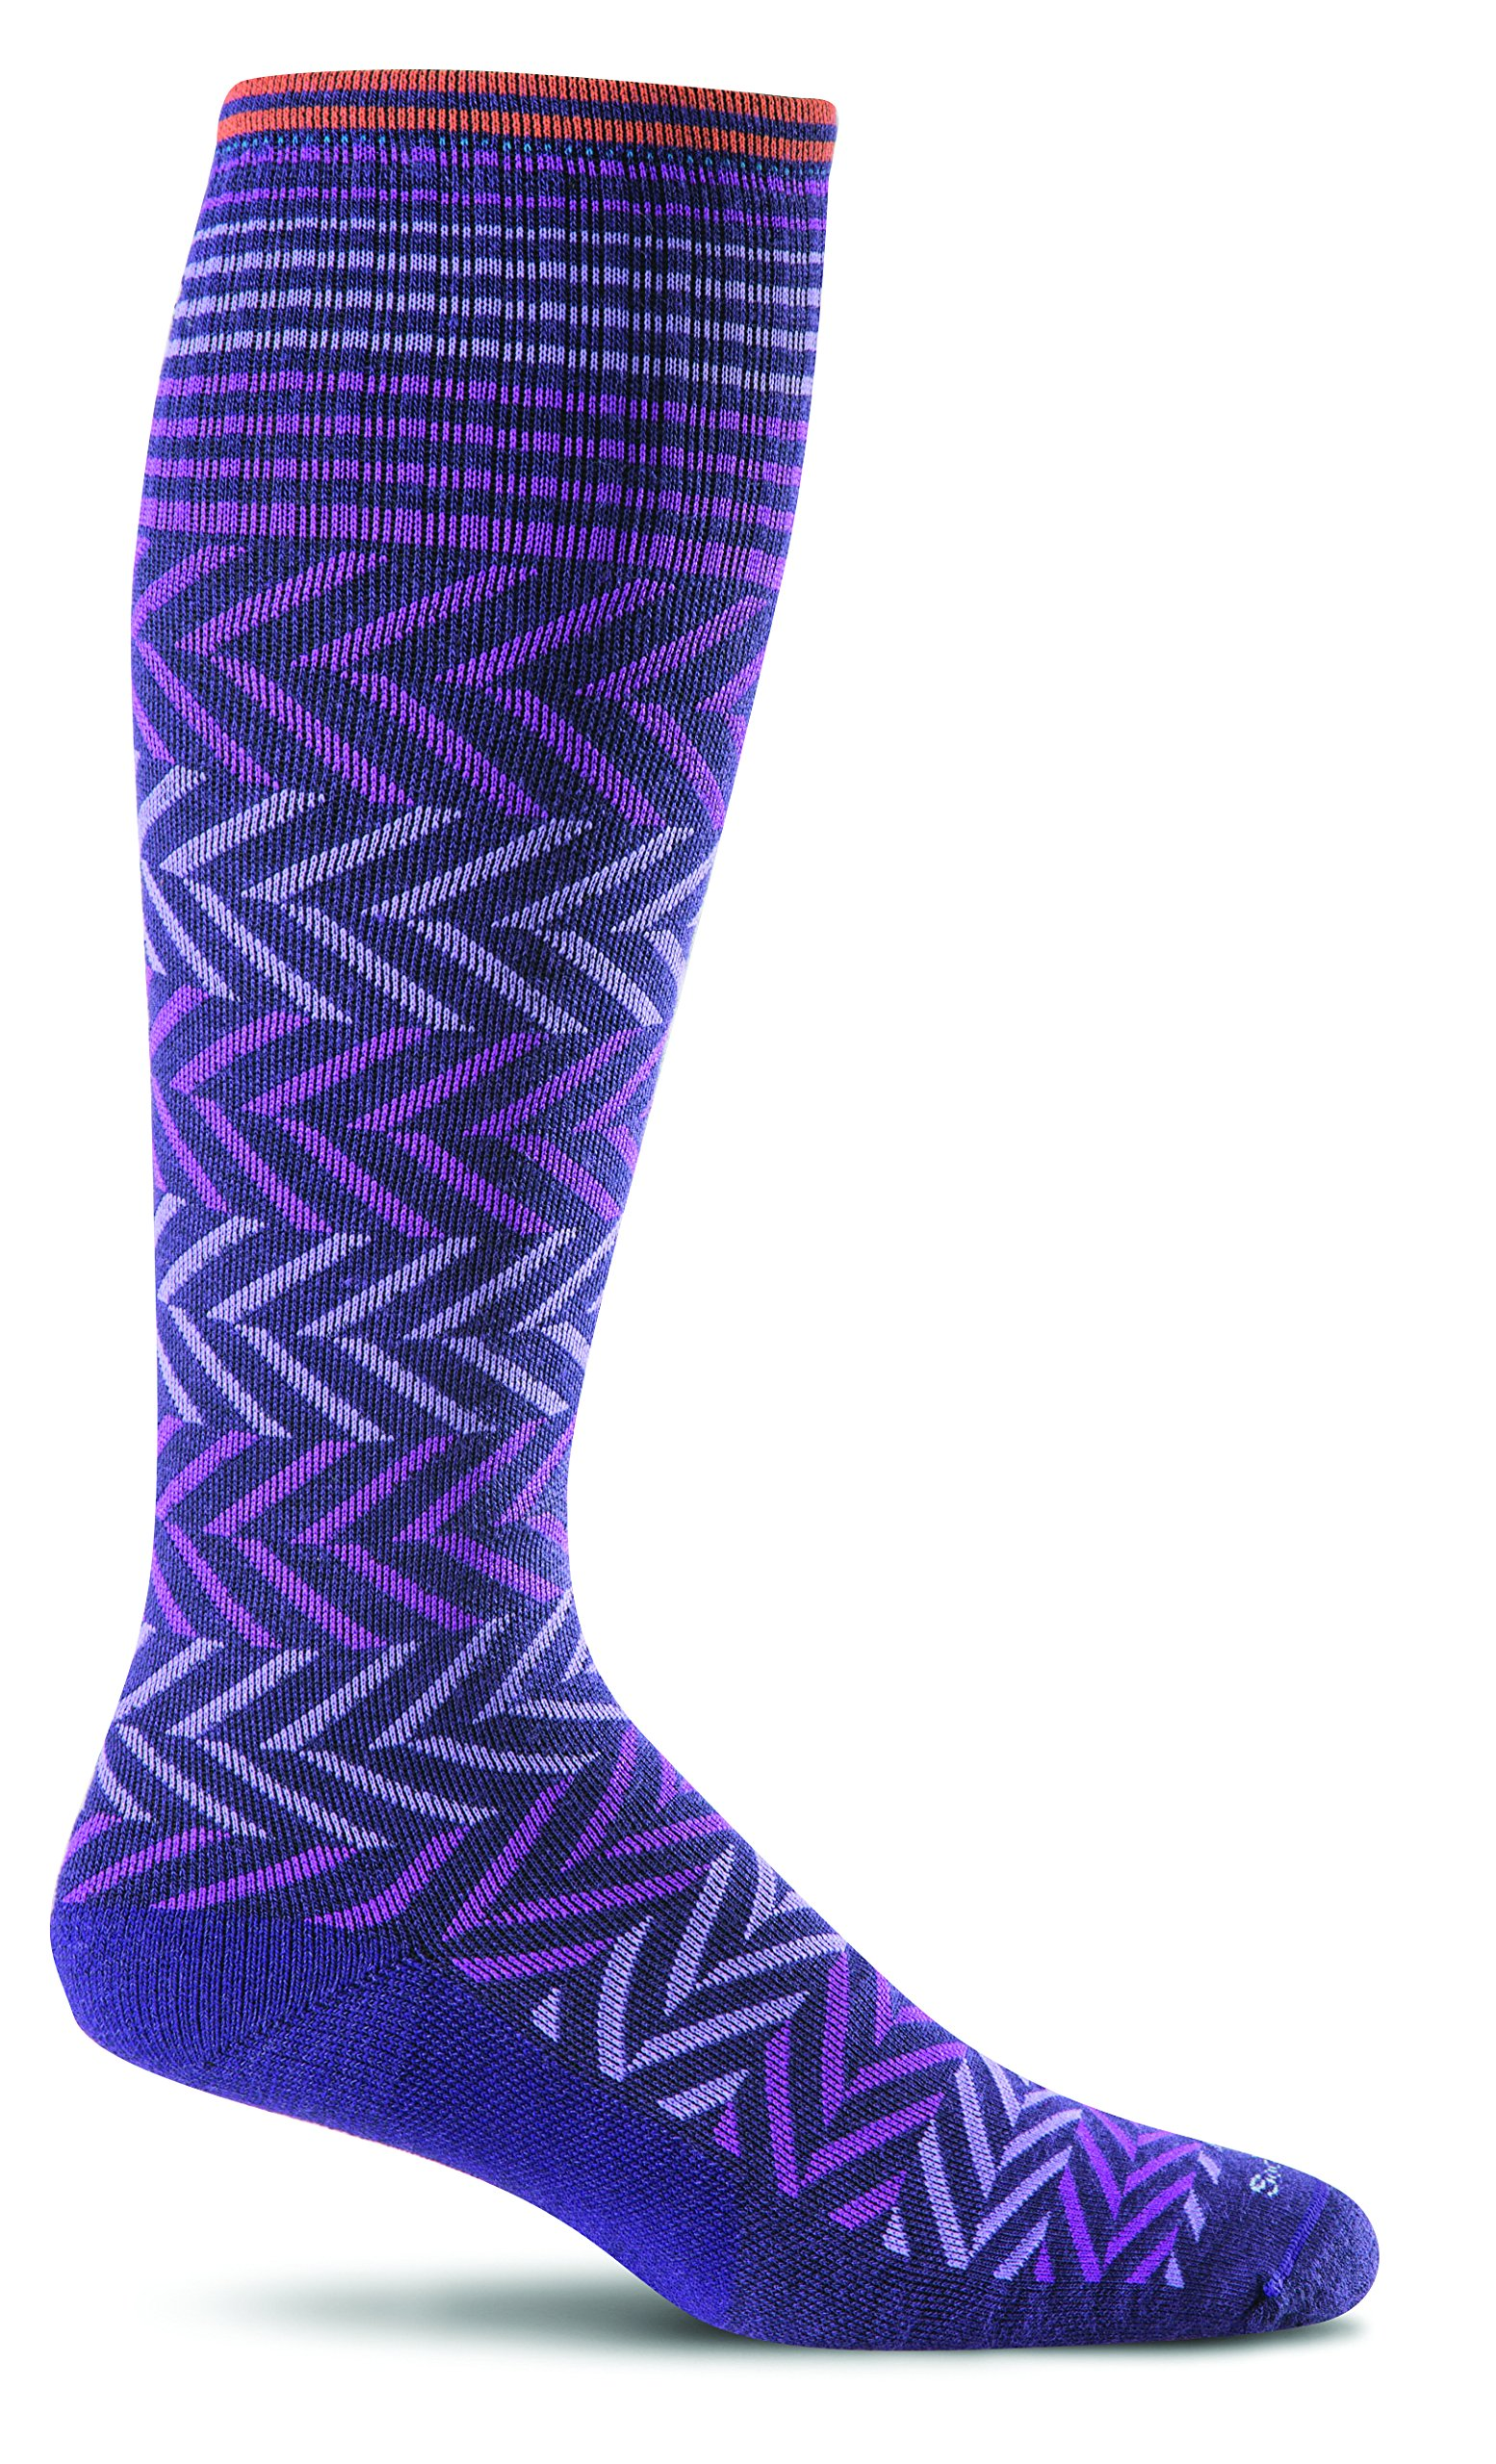 Sockwell Women's Chevron Graduated Compression Socks, Concorde, Medium/Large